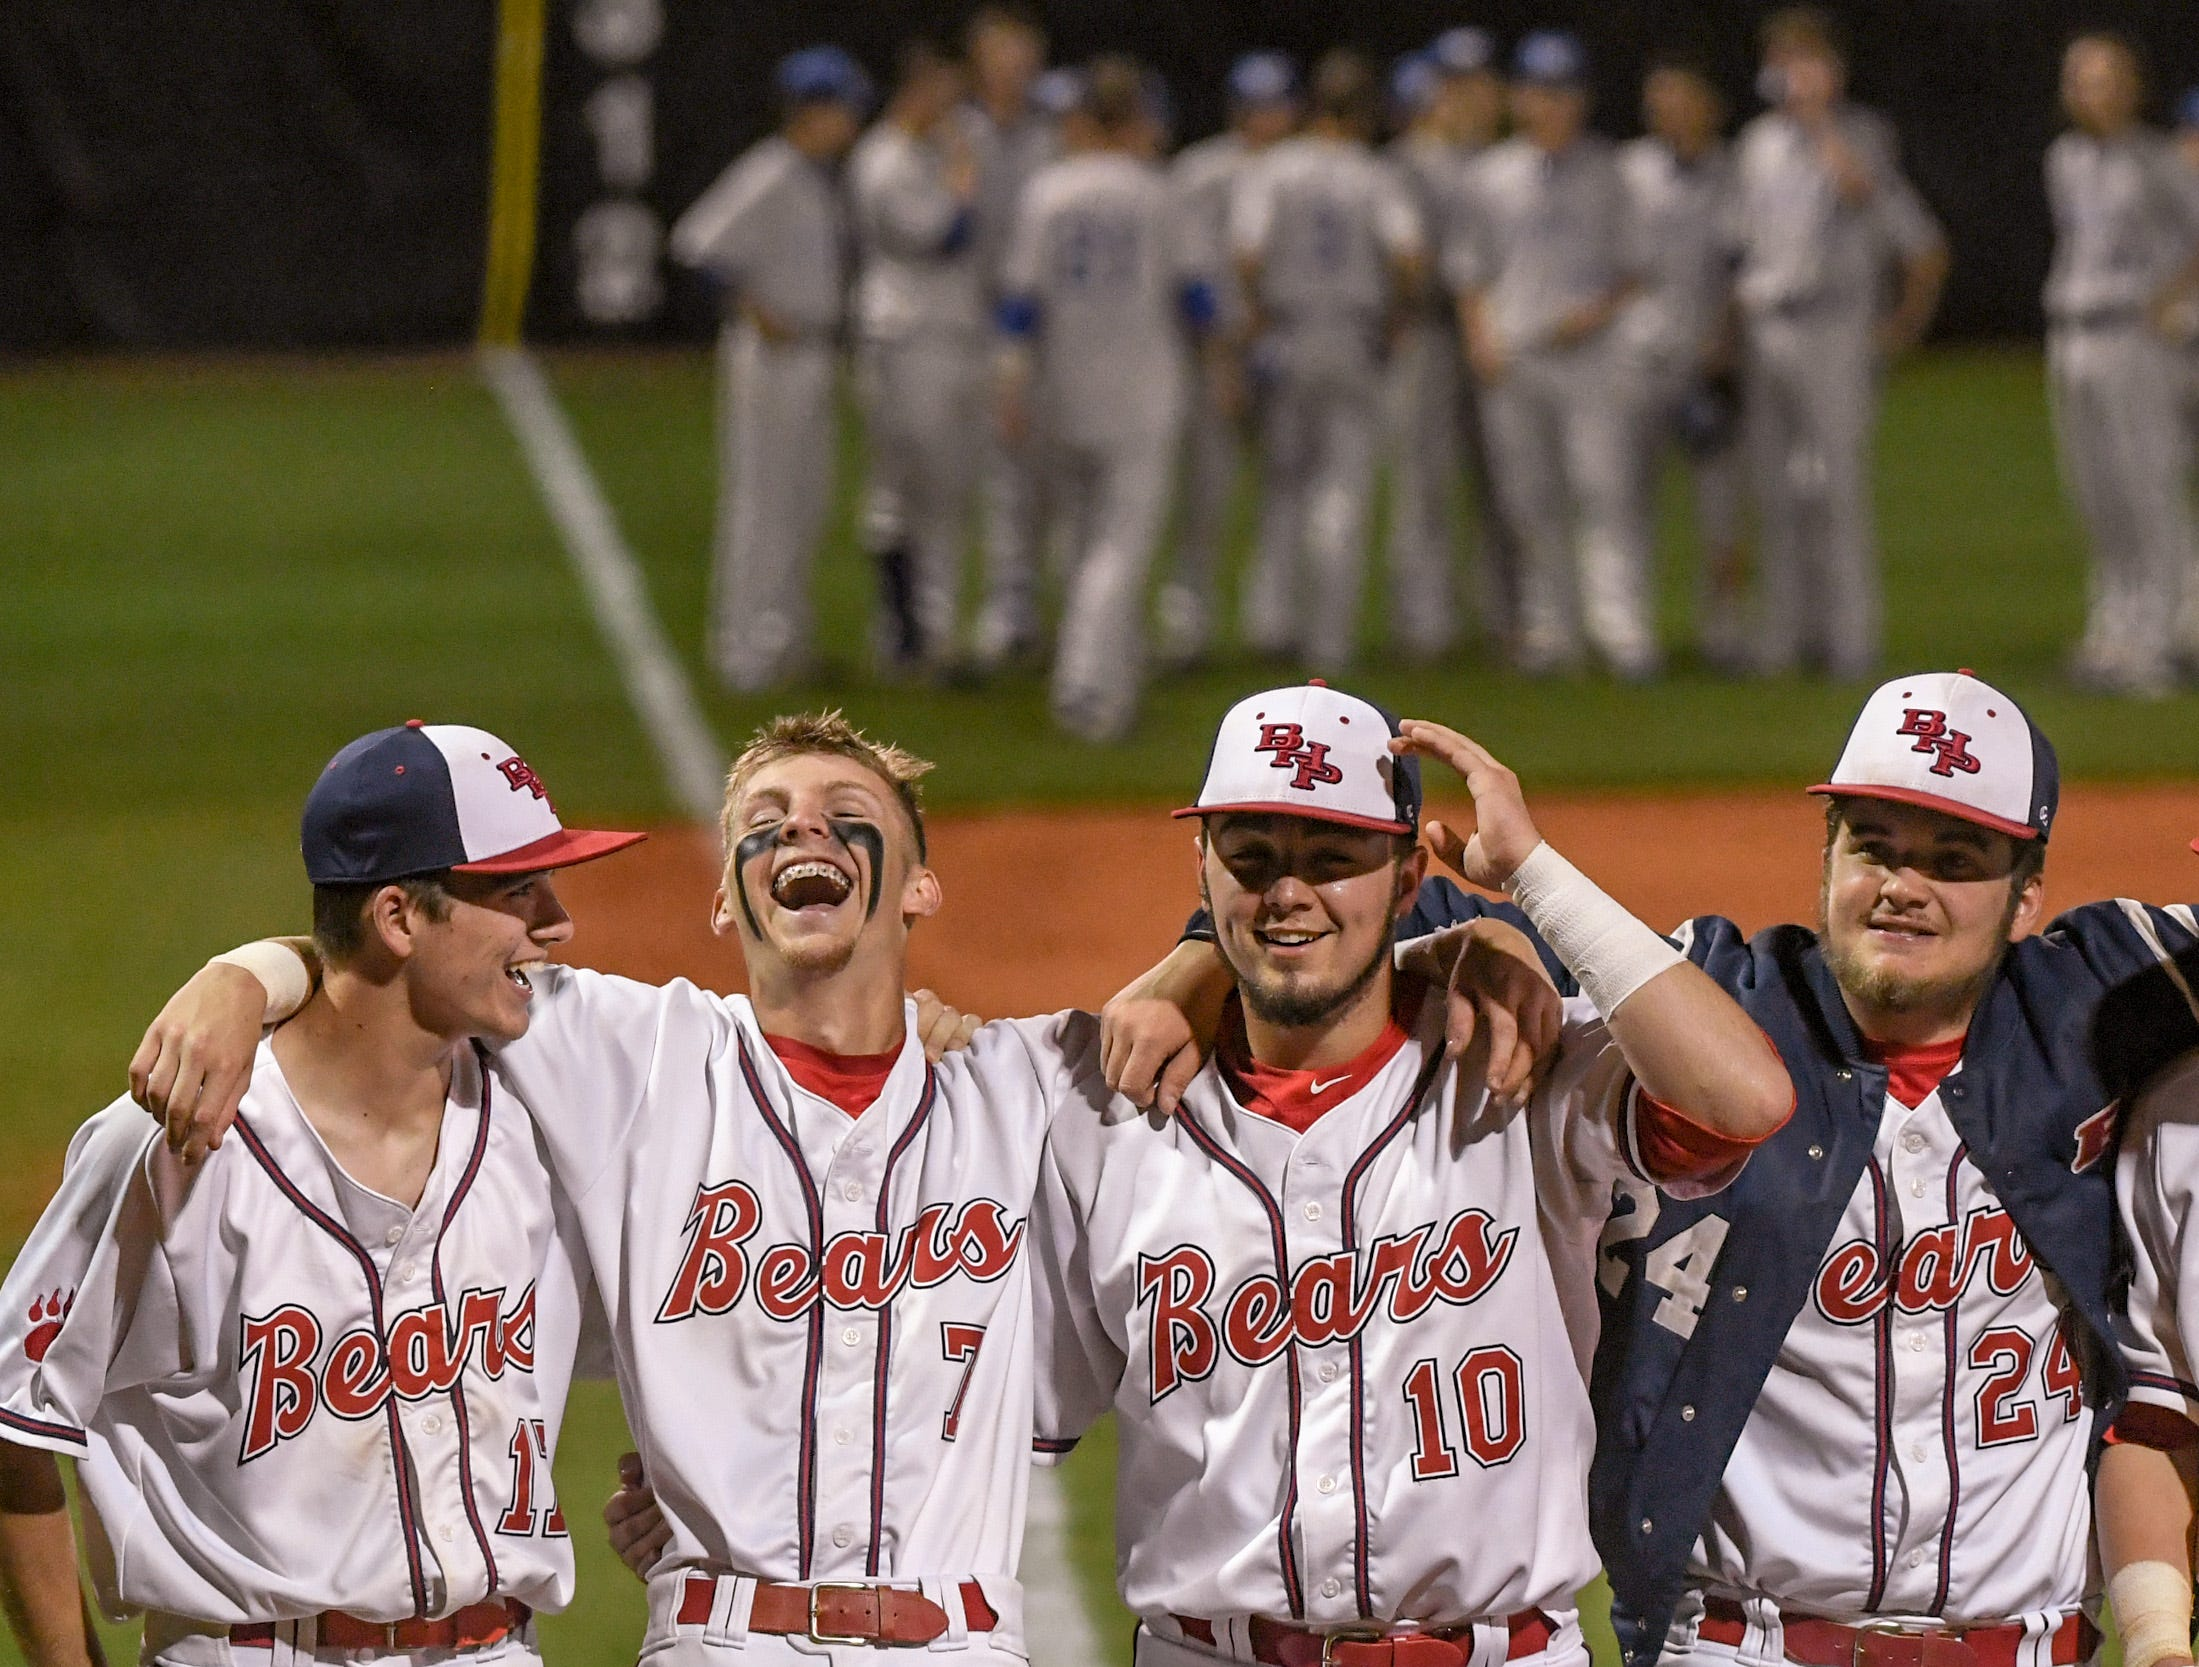 Belton-Honea Path players celebrate beating Wren at Belton-Honea Path High School in Honea Path Wednesday, April 10, 2019.  BHP won 7-5 and the Class AAAA Region 1 title.